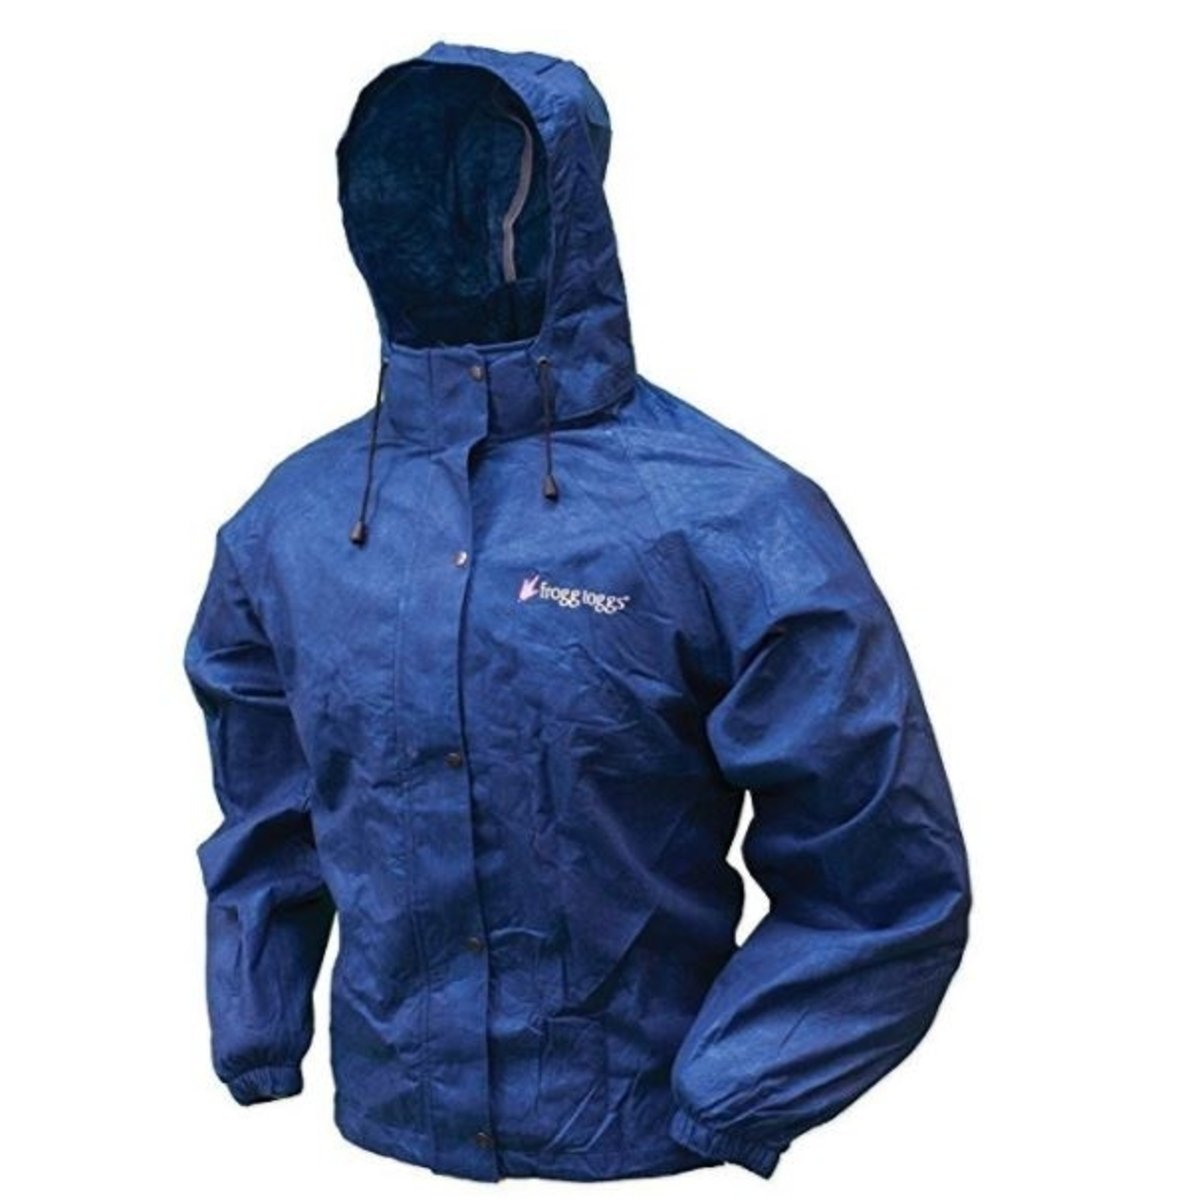 Frogg Toggs Women's All Purpose Rain Jacket, Royal Blue, Small/Medium